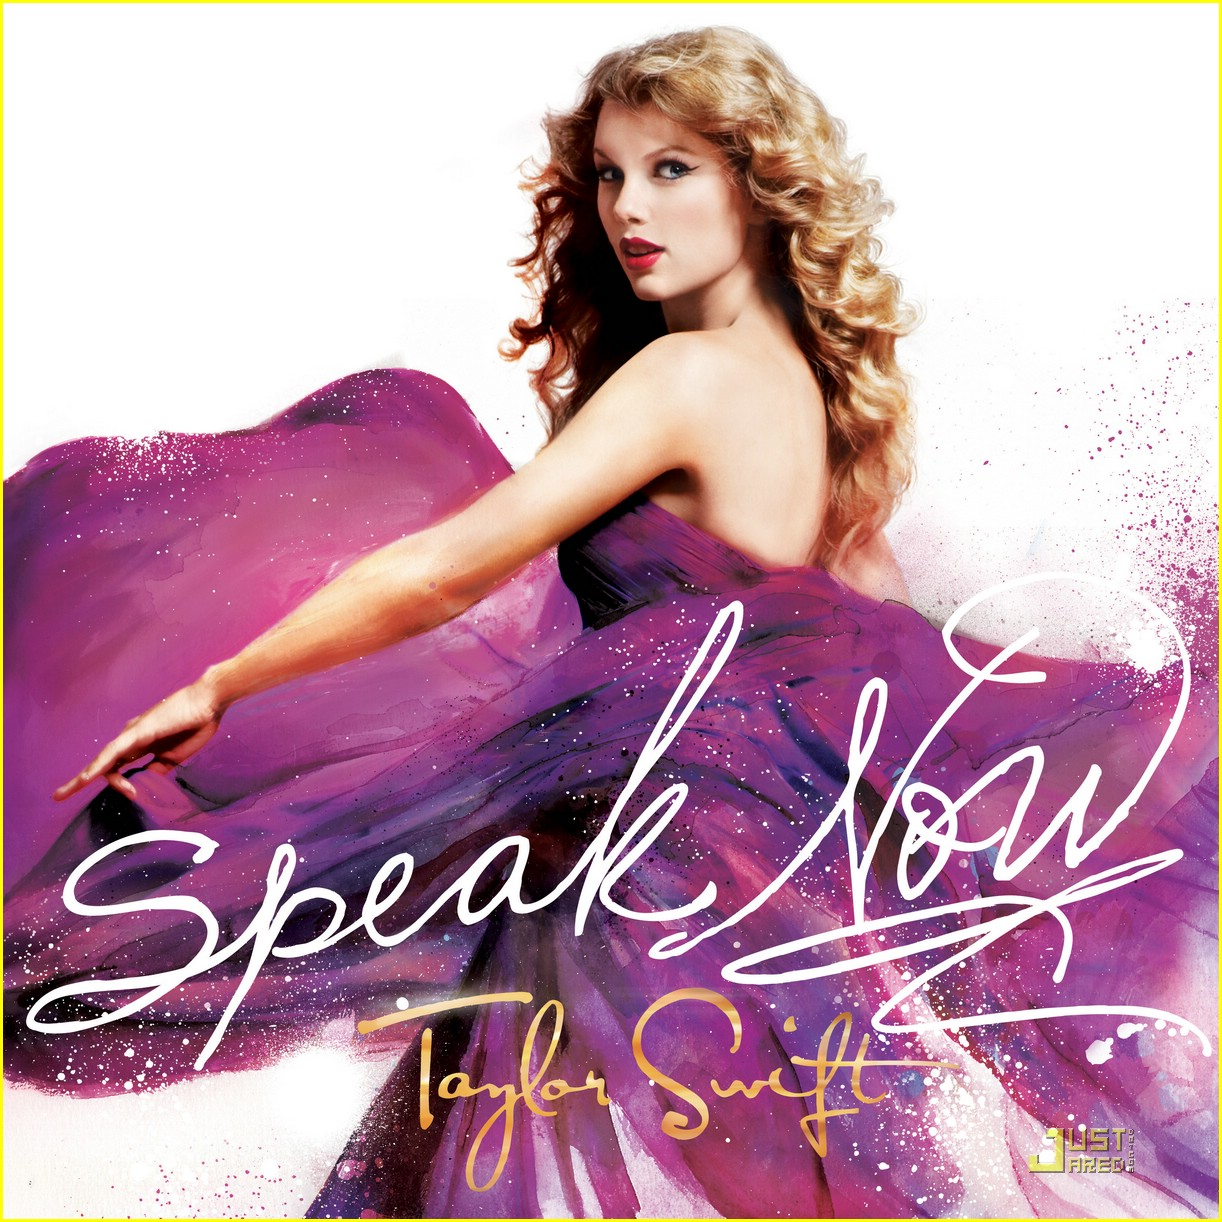 http://4.bp.blogspot.com/_94GCV6x5kIo/TM4hiSNtY5I/AAAAAAAAC0I/k3bLSJR-yUc/s1600/taylor-swift-speak-now-01.jpg